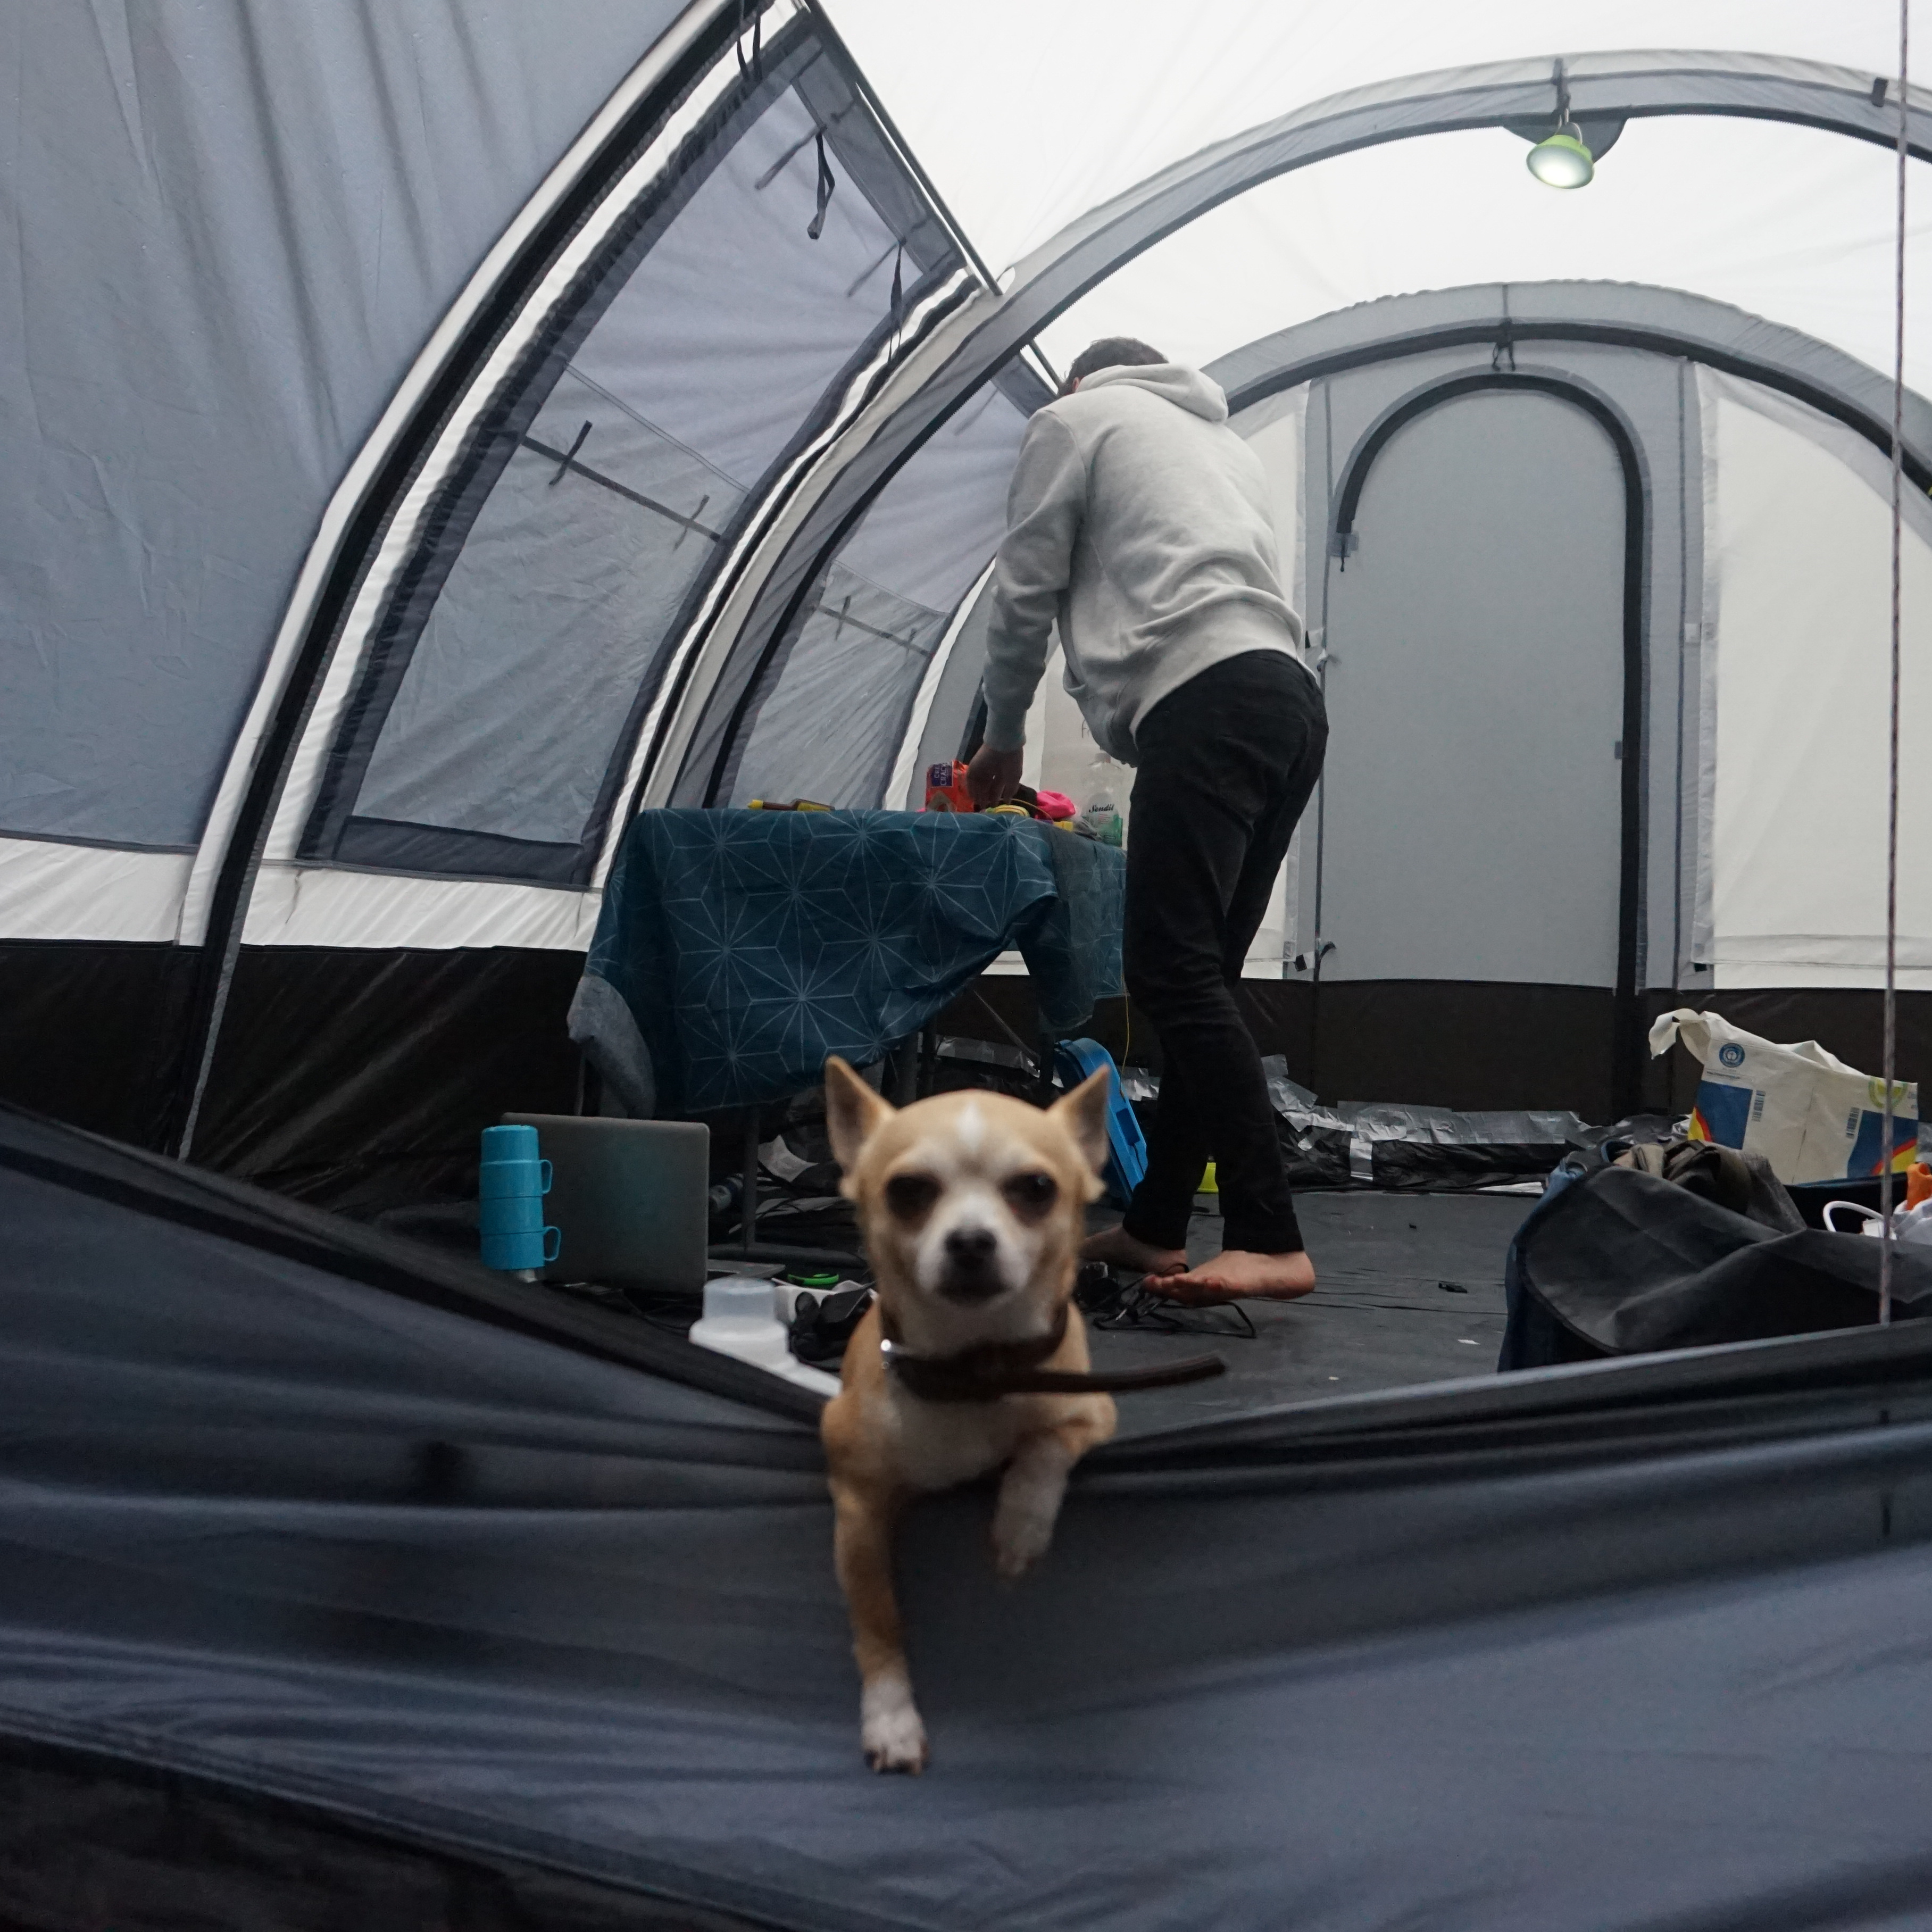 Dog in center of the tent